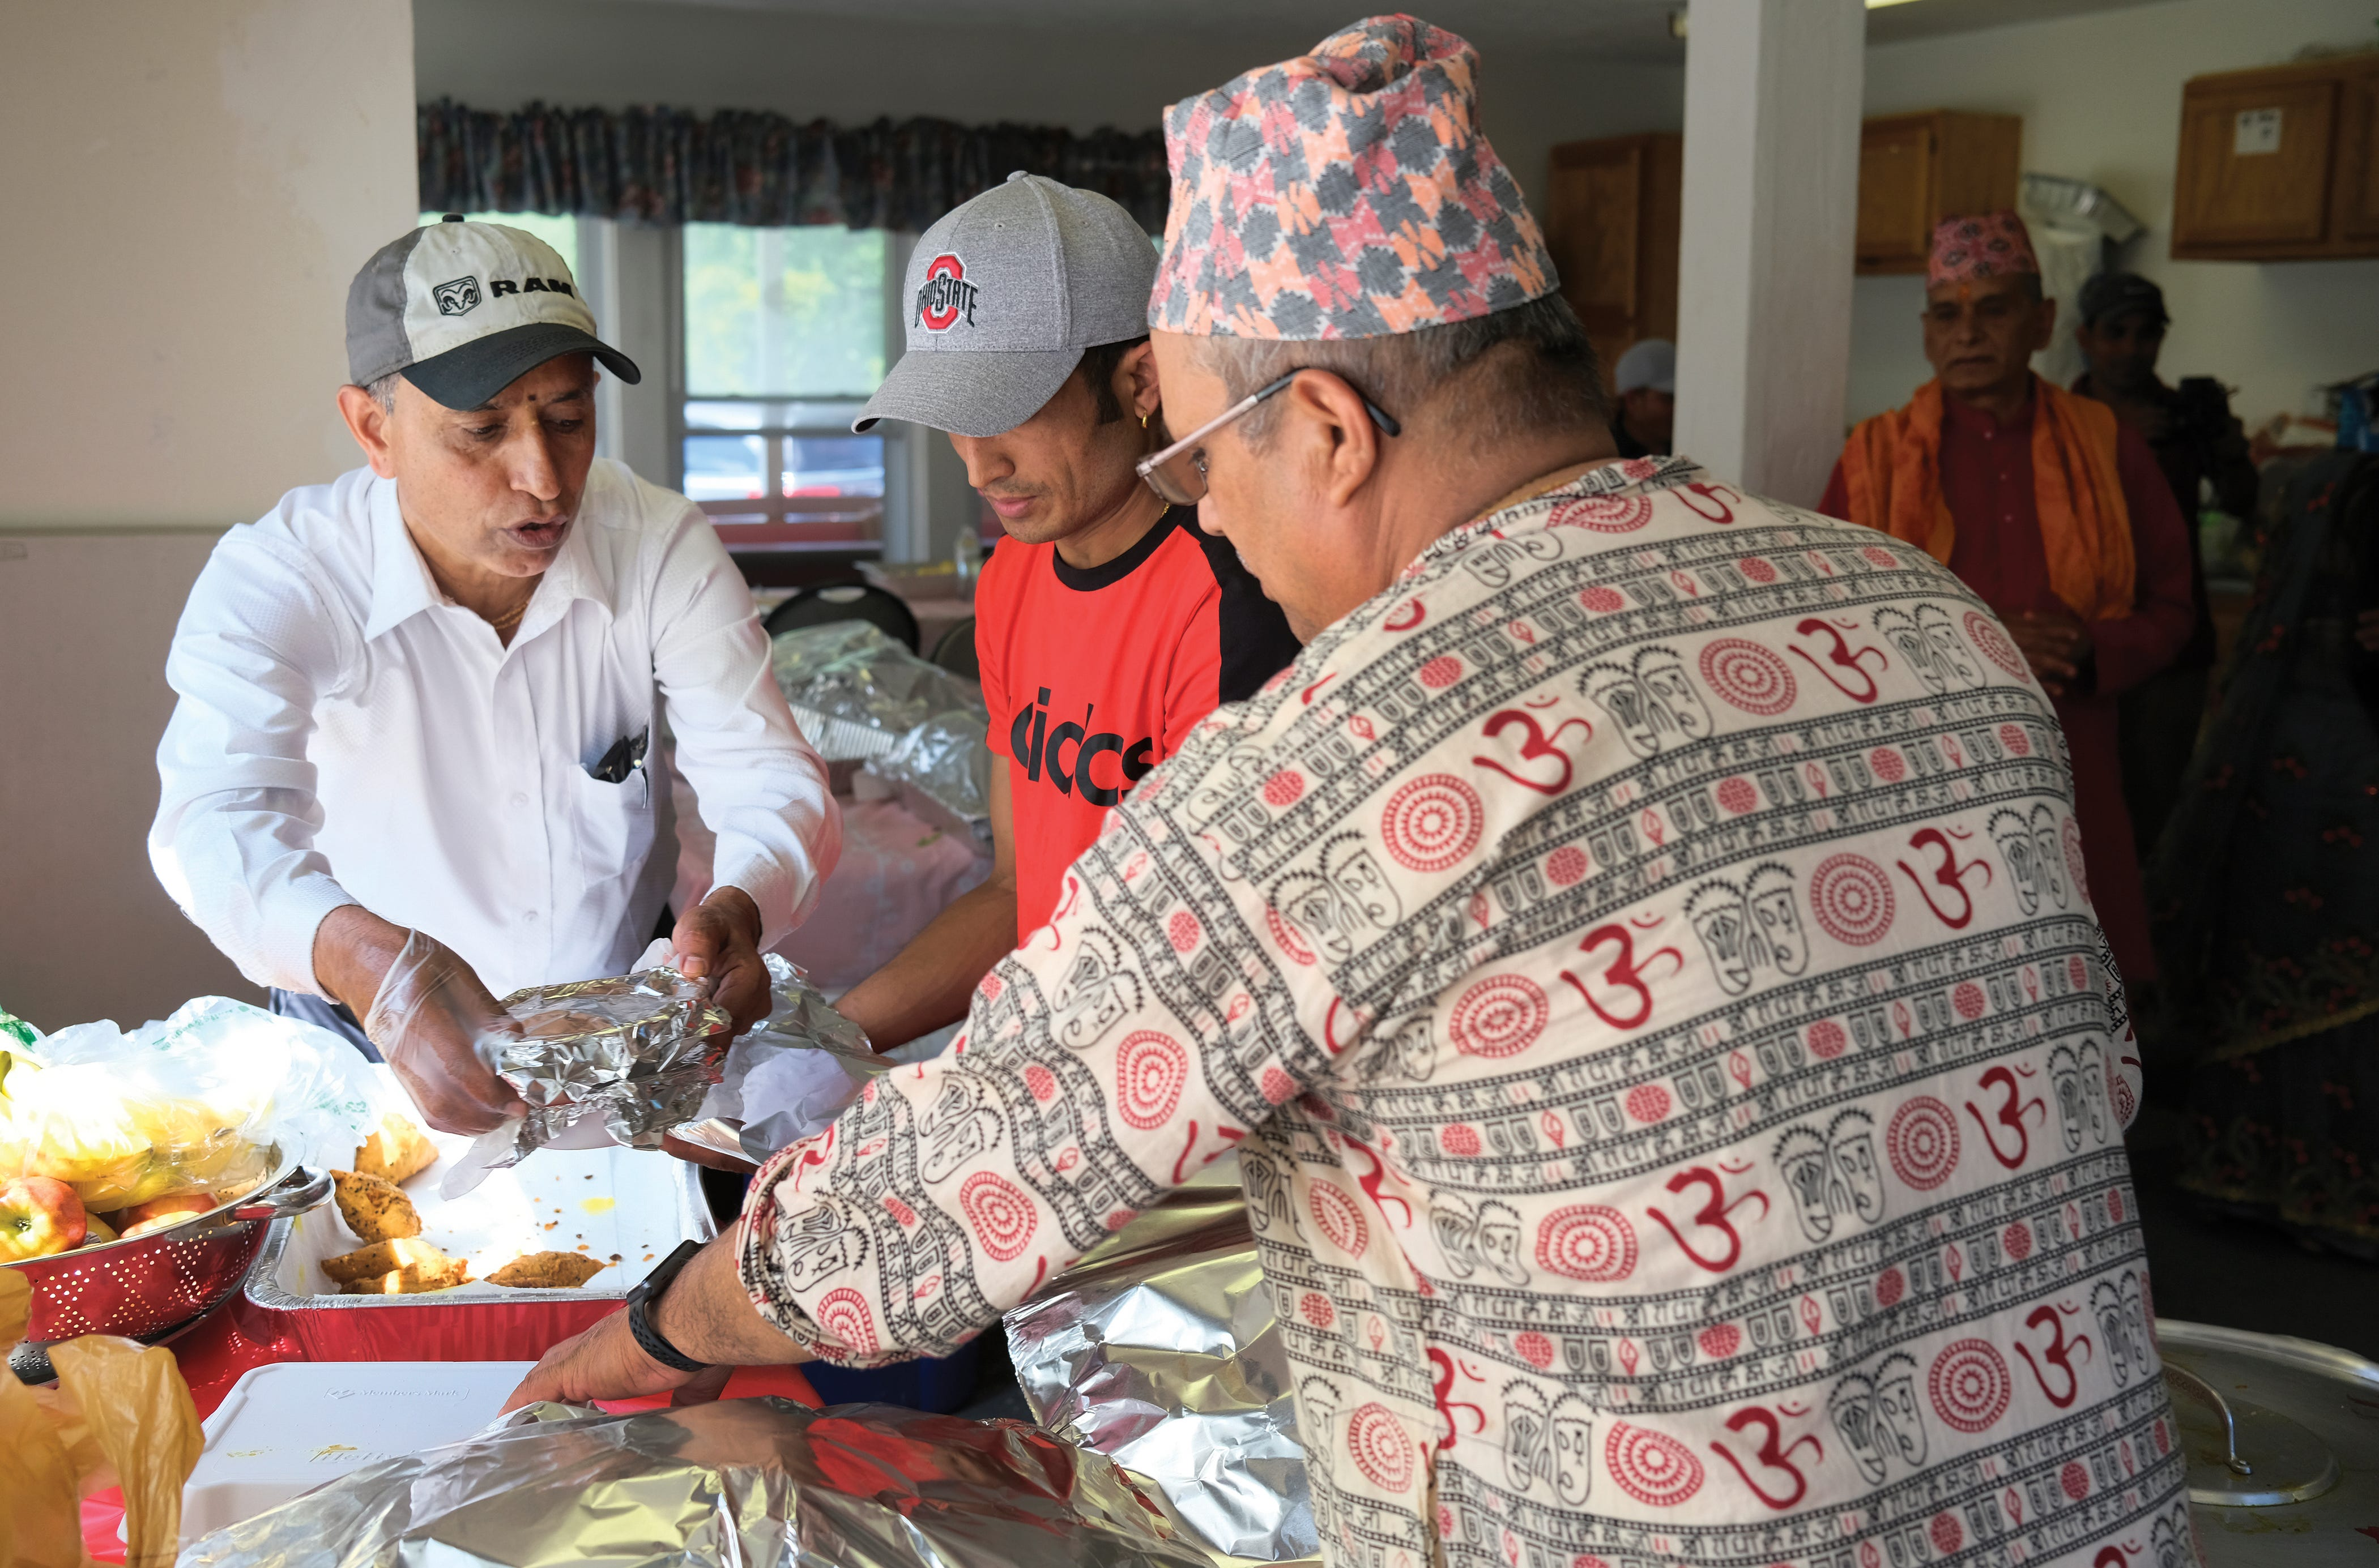 Ram Upreti helps prepare food for guests at the non-profit Vedic Welfare Society in Westerville during a Threading Ceremony.